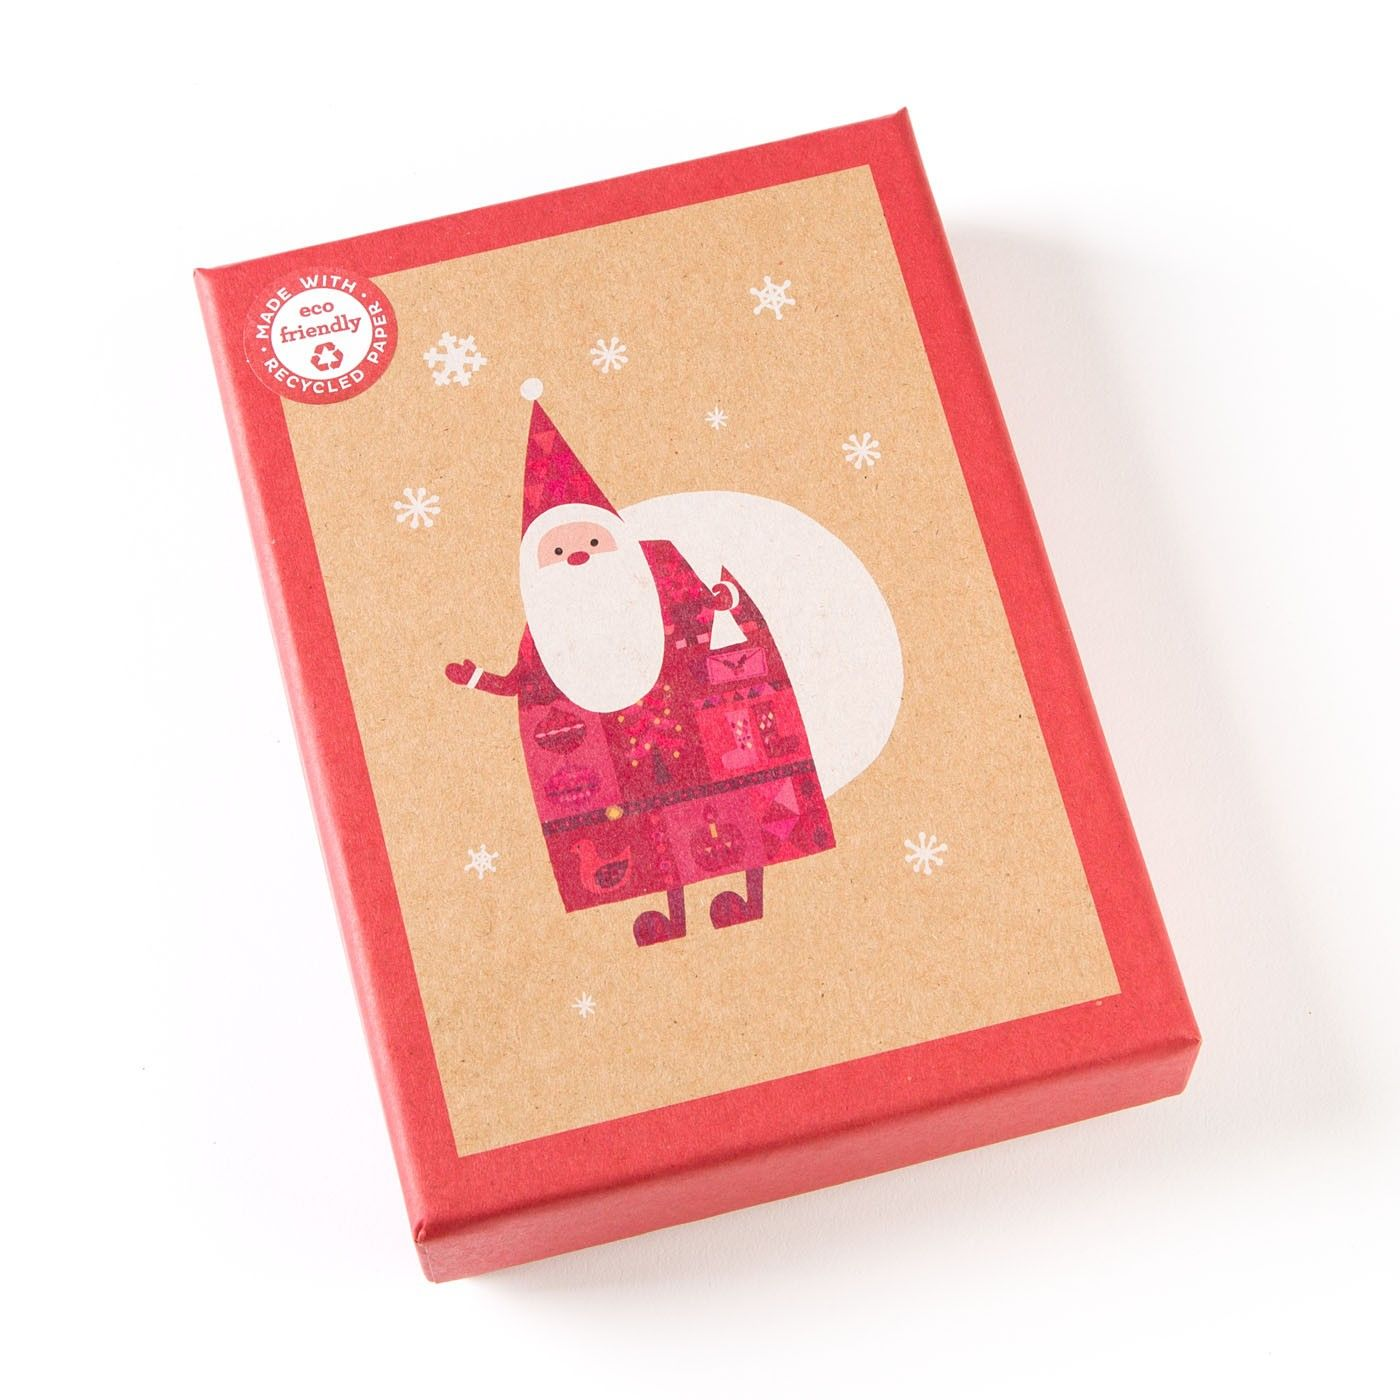 Patchwork Santa Boxed Holiday Cards (Set of 12) | Patchwork, Eco ...